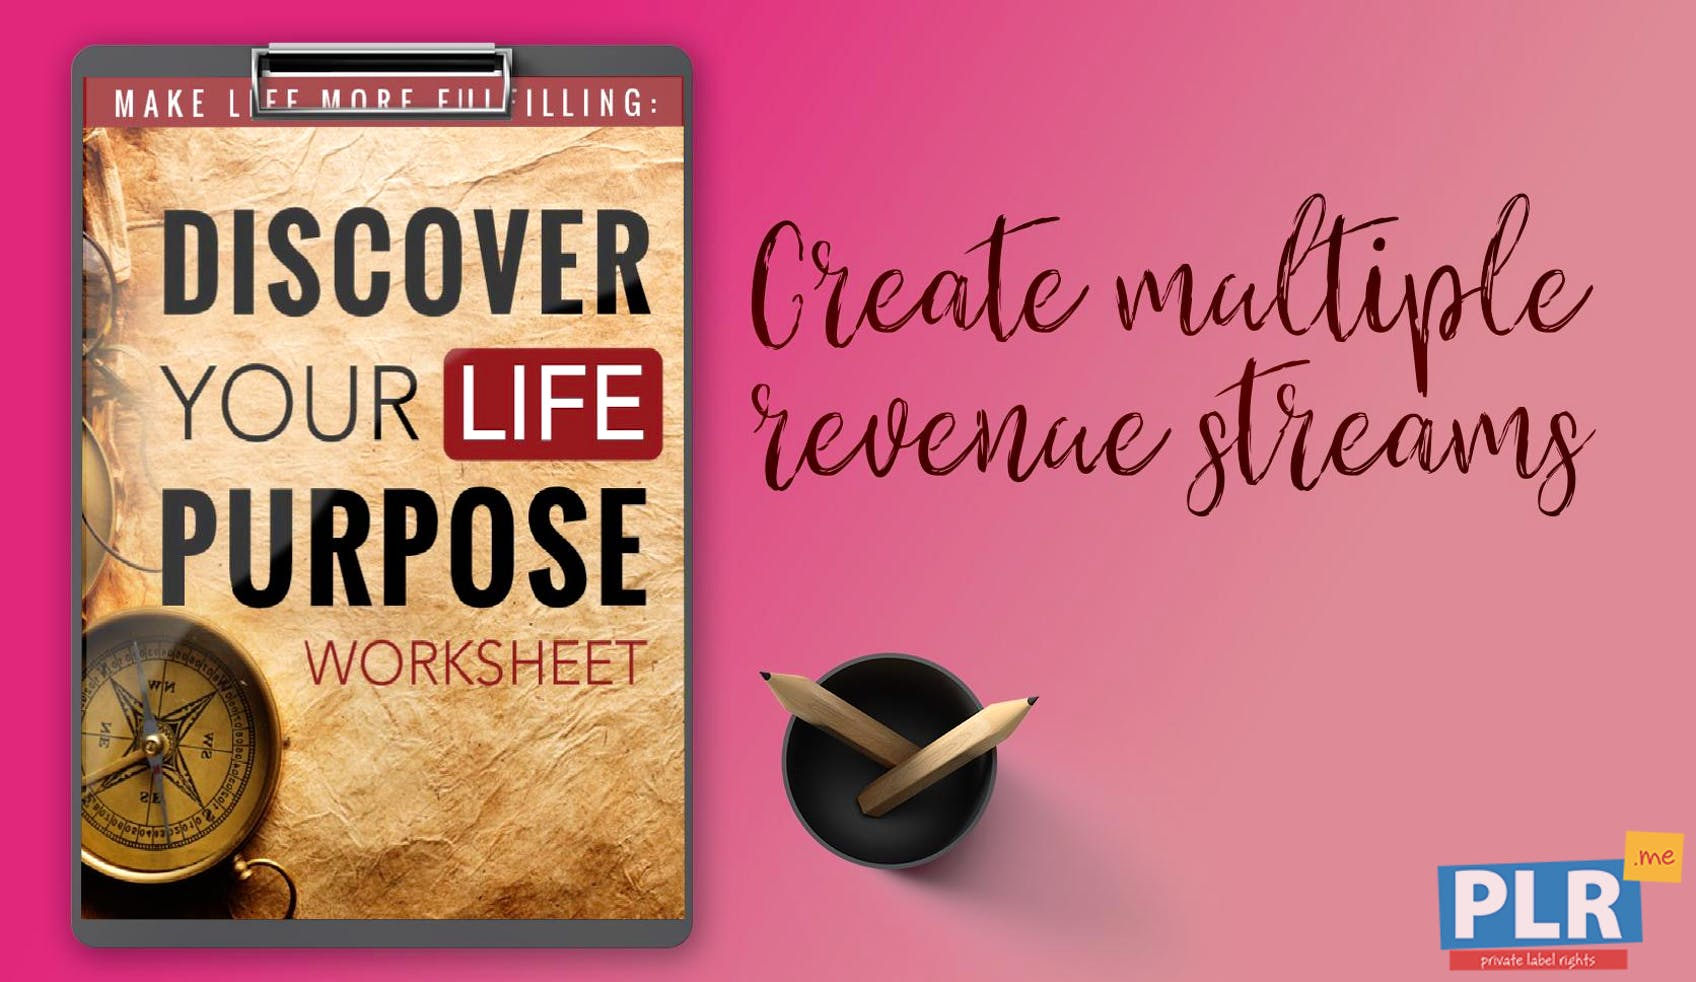 Make Life More Fulfilling Discover Your Life Purpose Worksheet